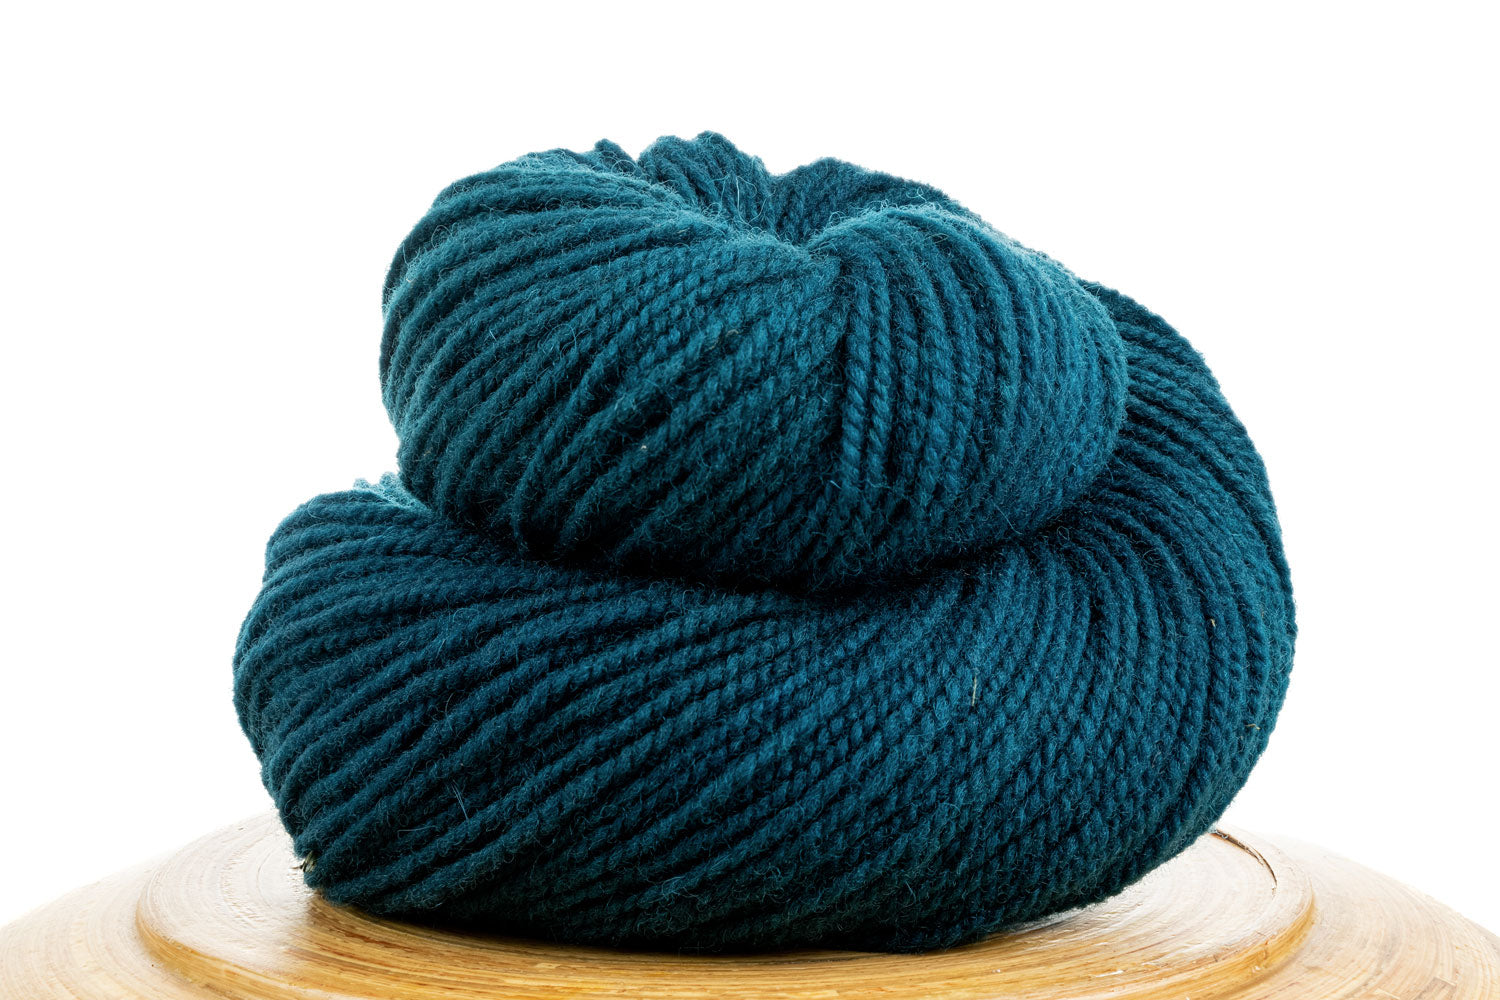 Winfield Canadian hand-dyed yarn in Enchanted River, a dark teal